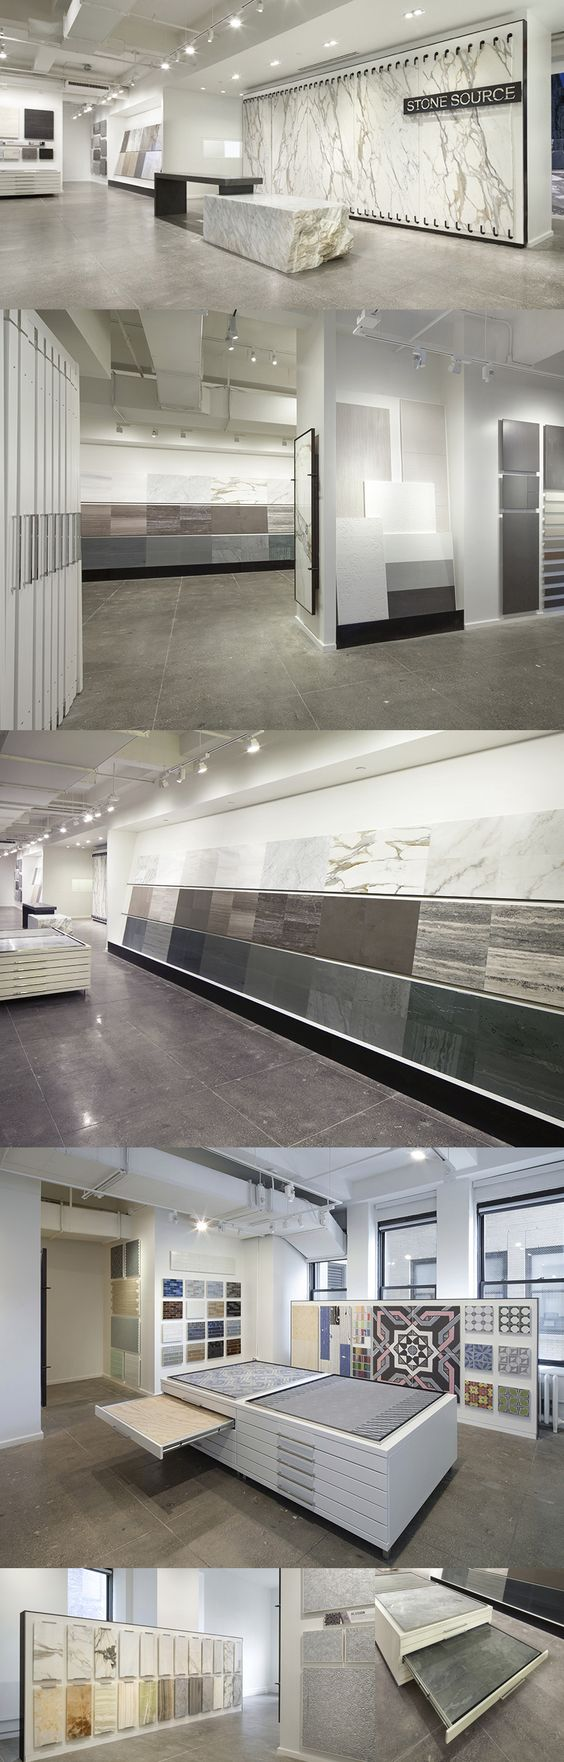 Stone Source New York Showroom